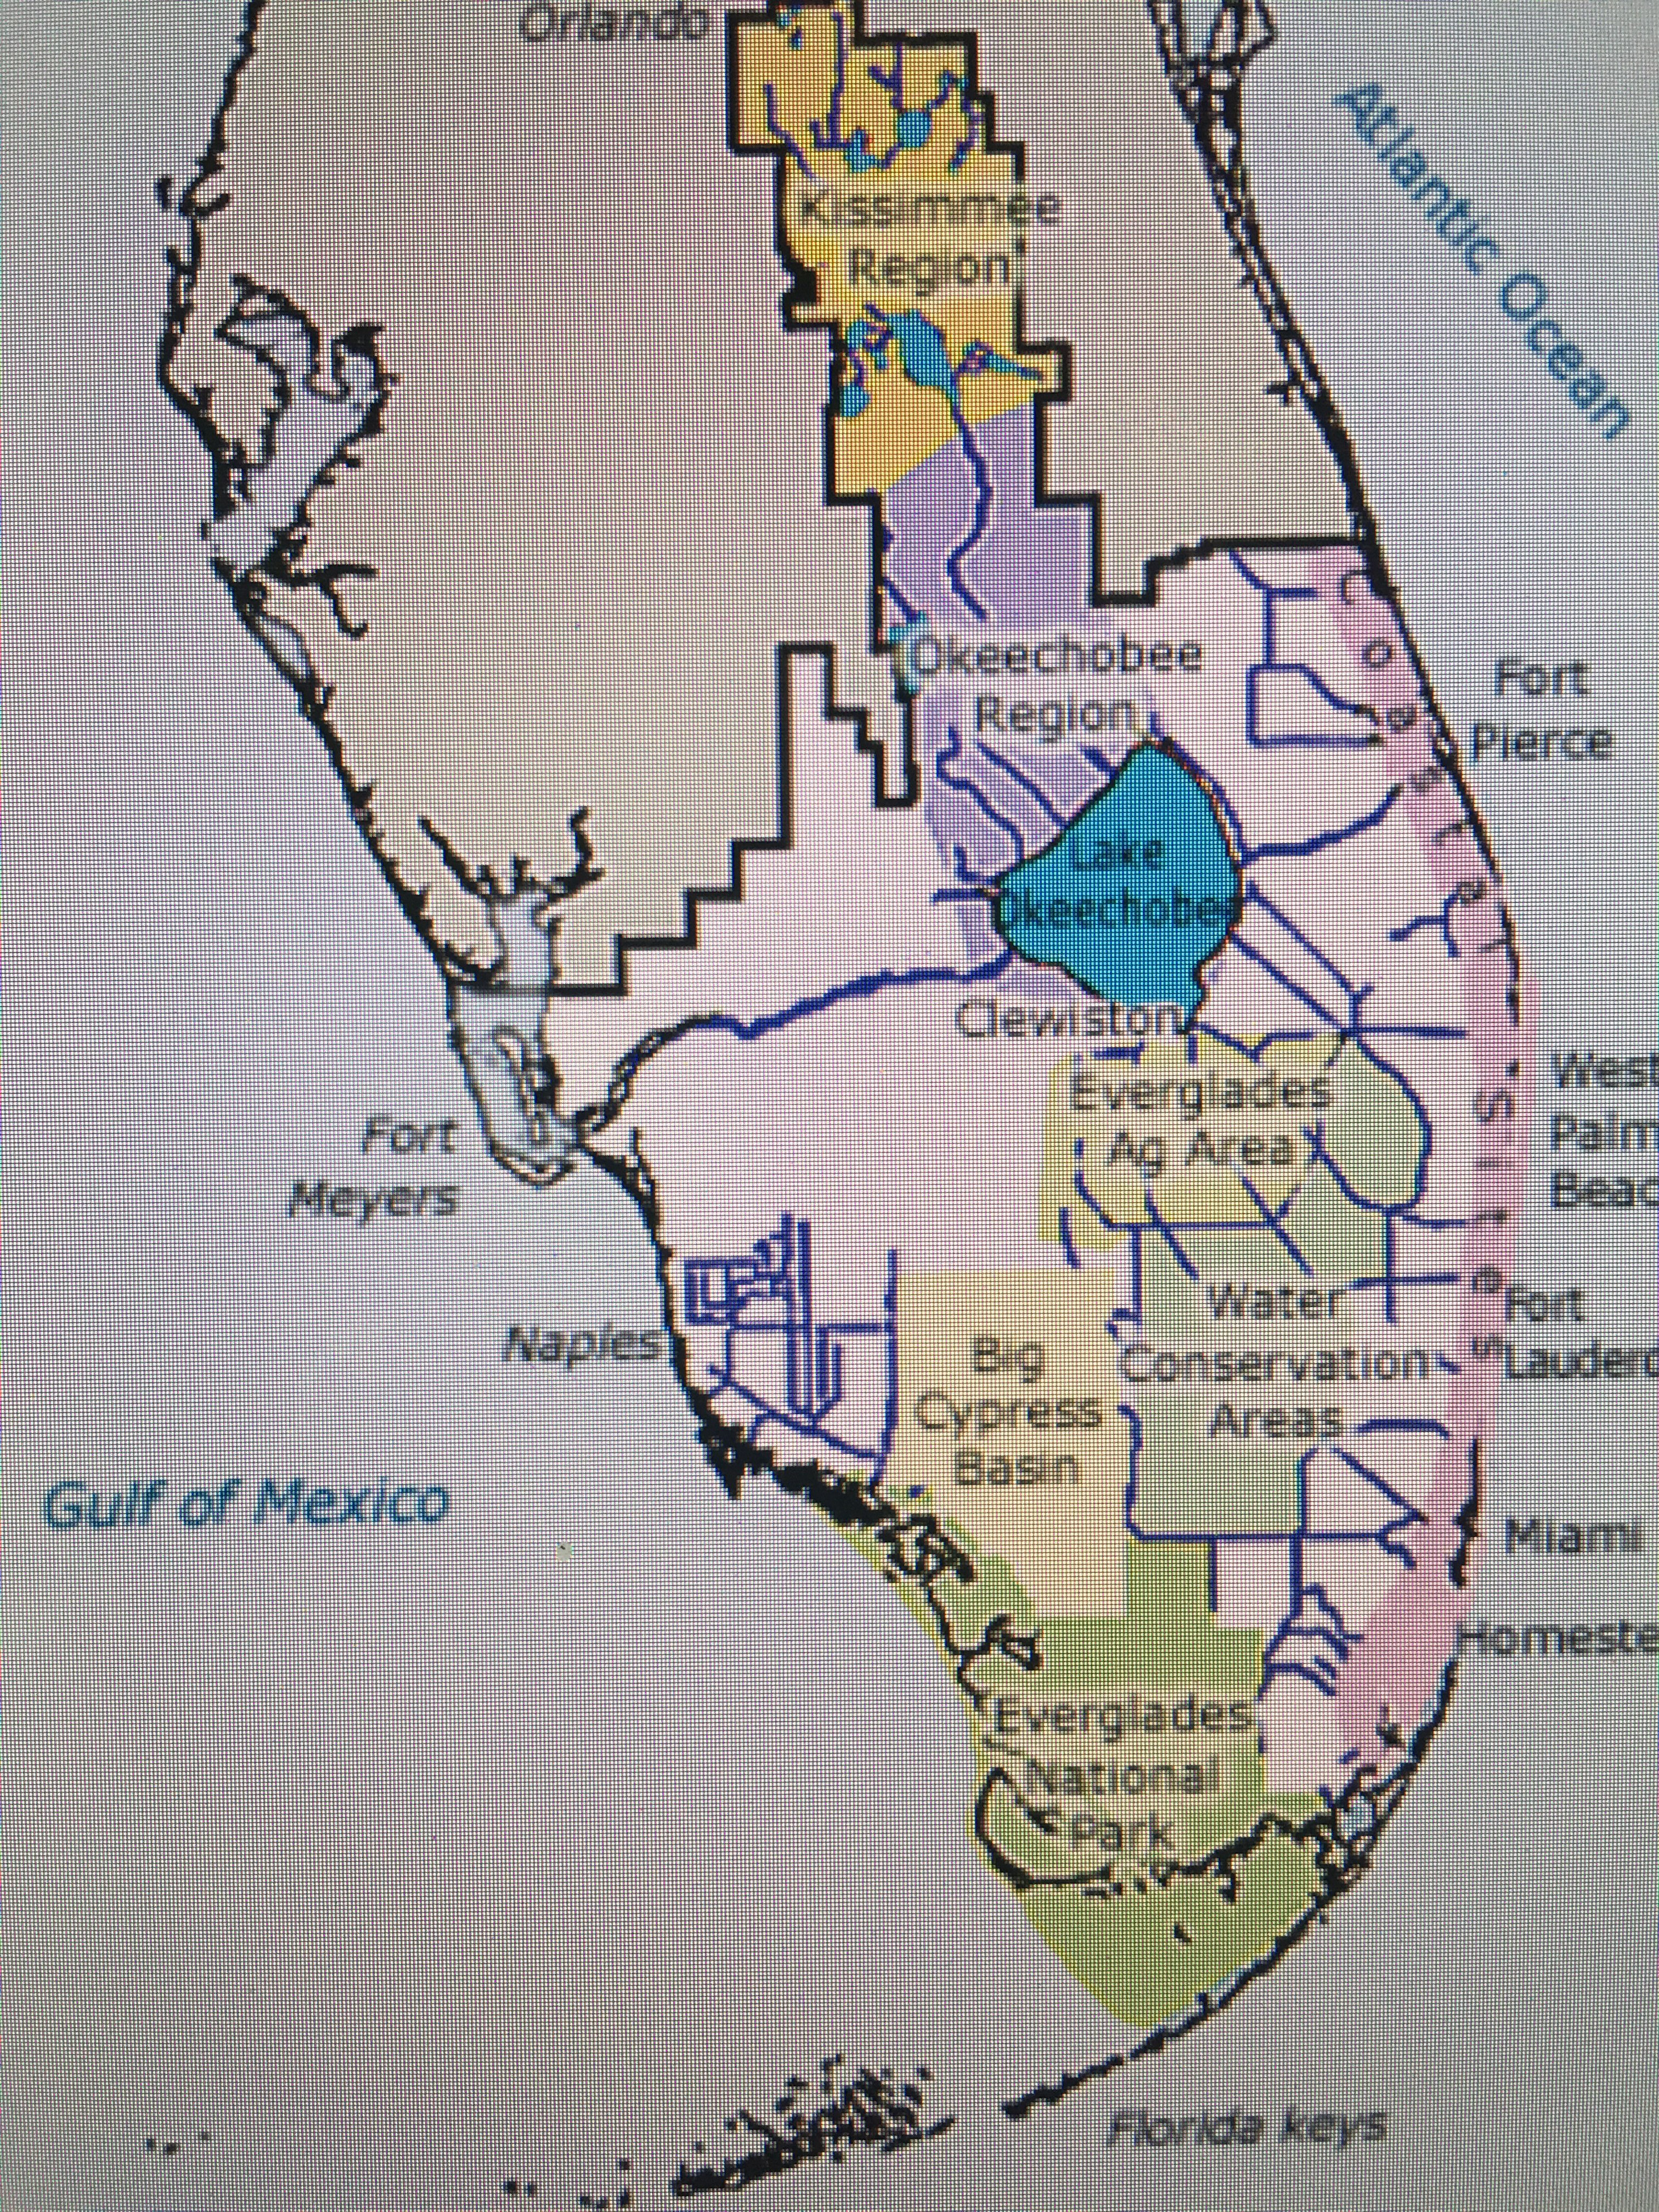 Lake Okeechobee BlueGreen Bacterial Blooms in Florida Lessons From